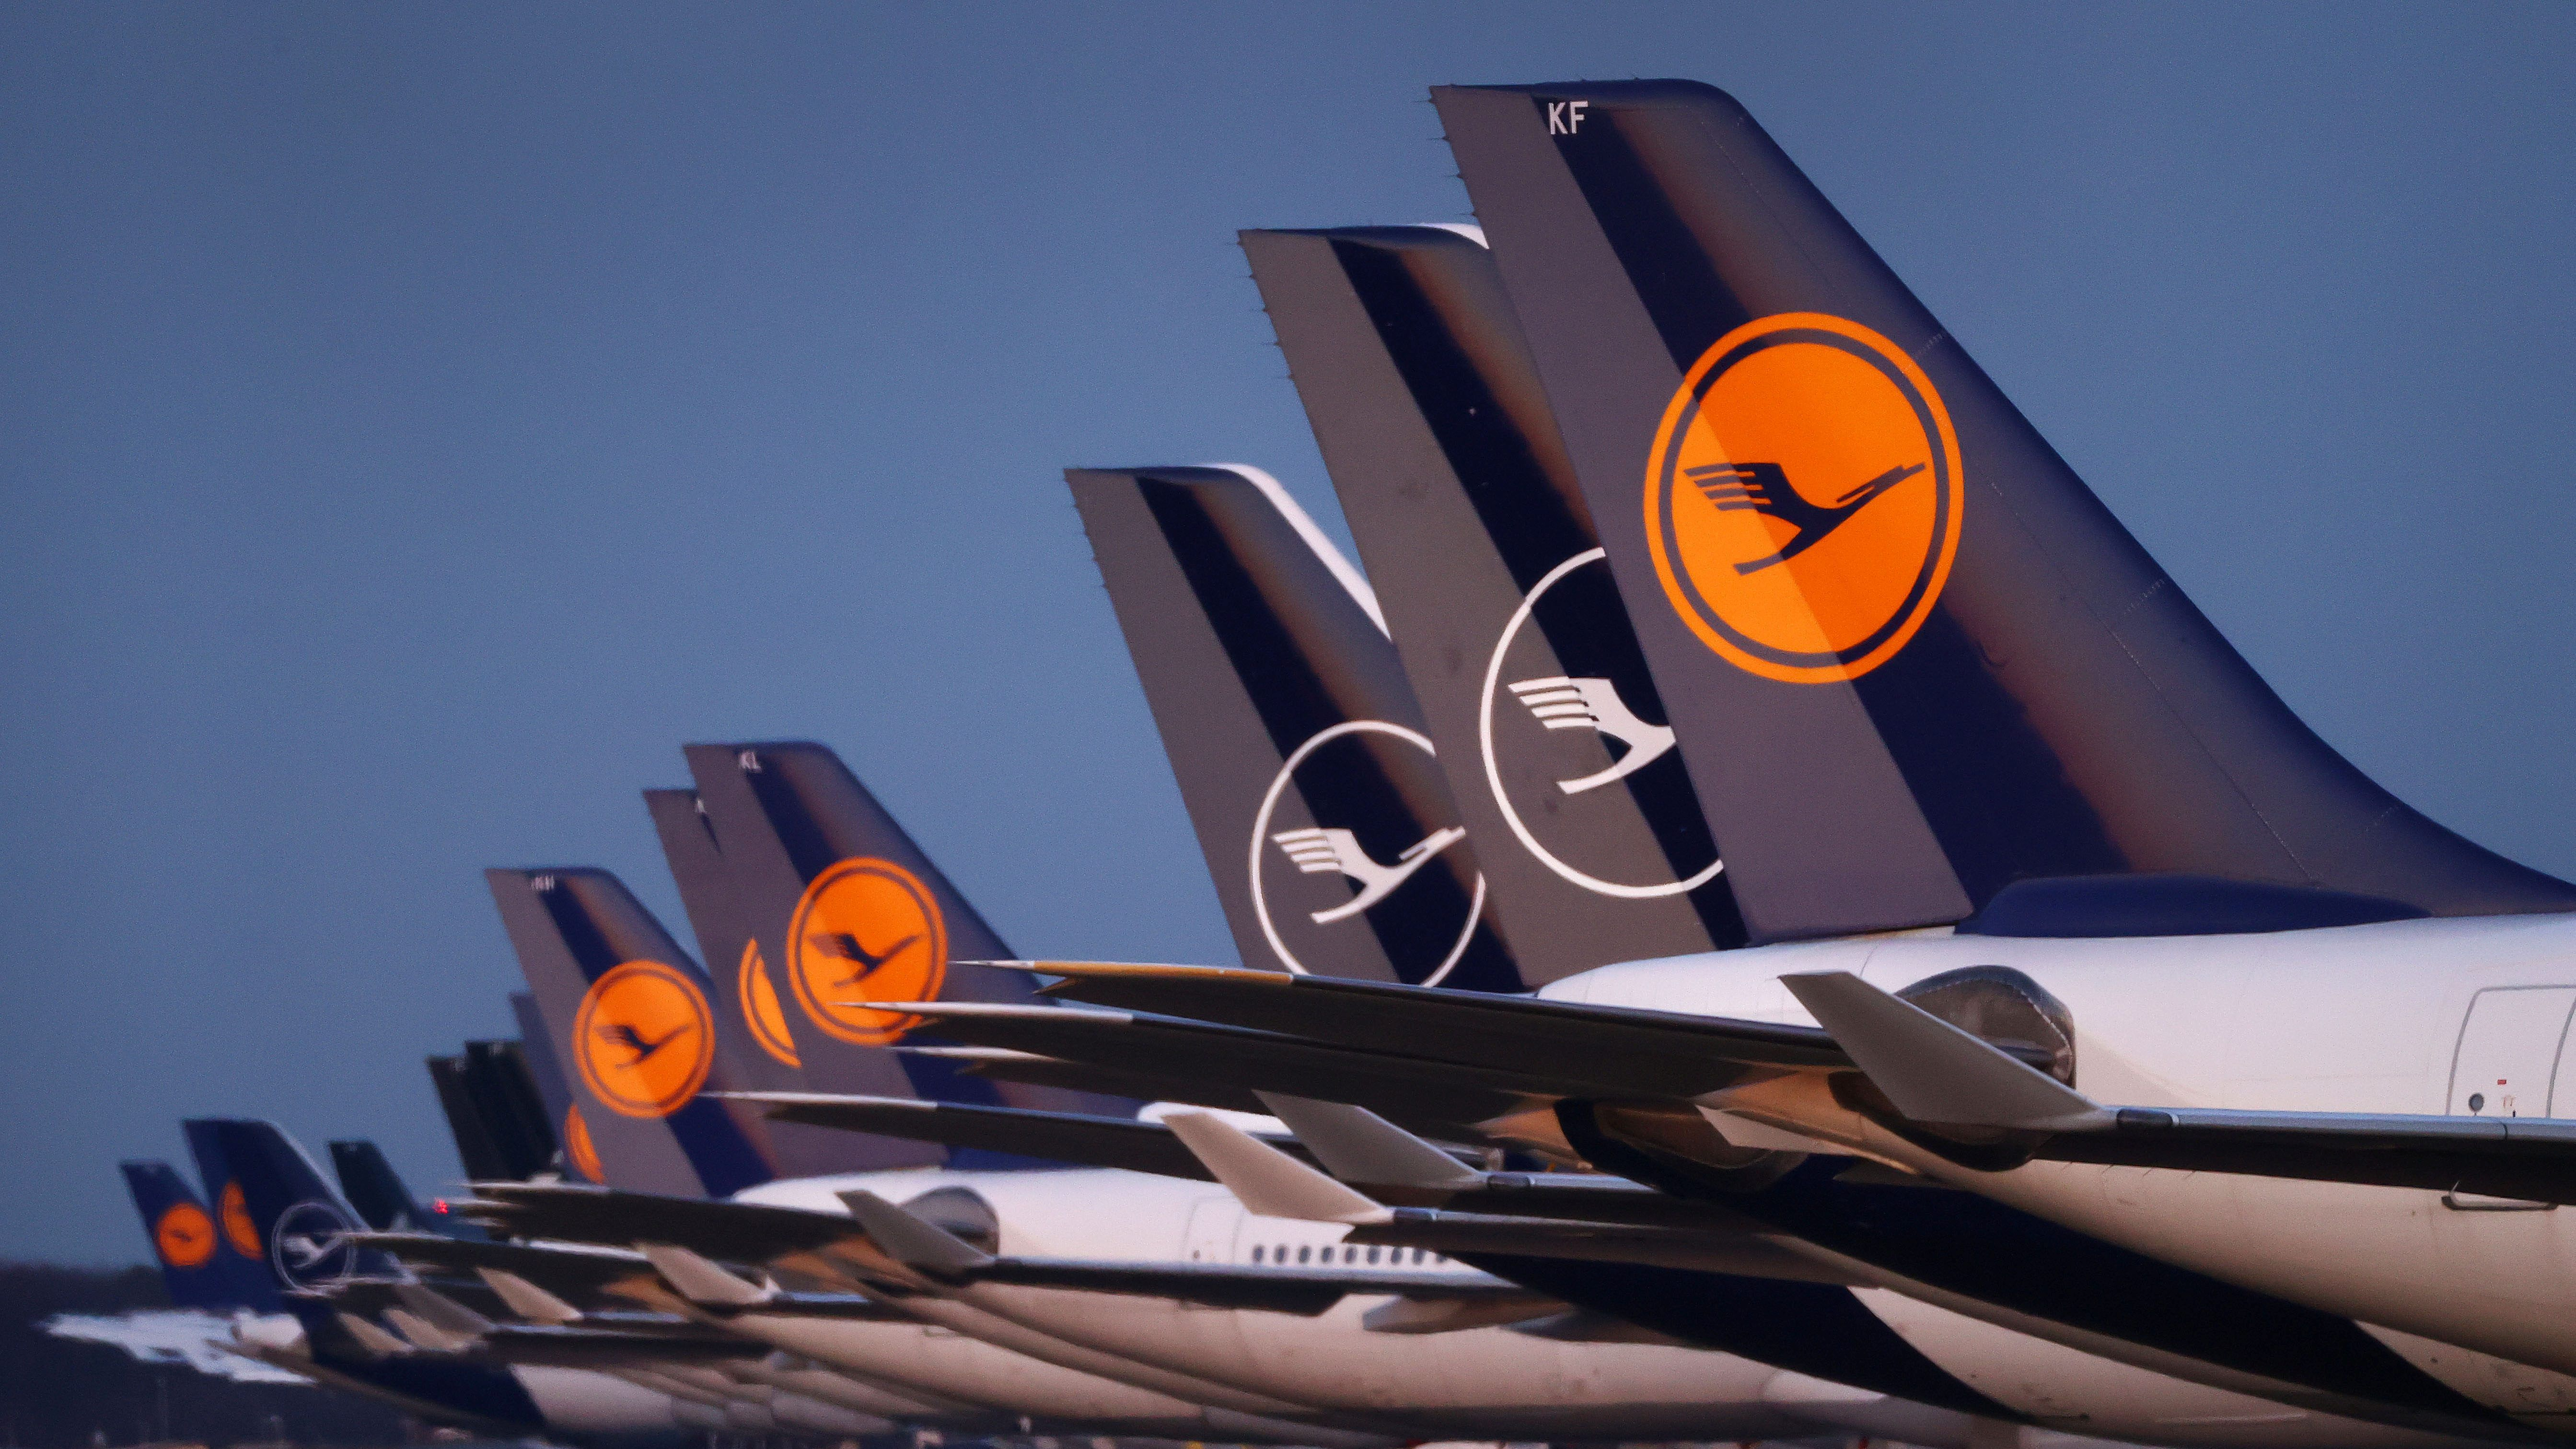 Lufthansa's bailout could be bigger than the market value of British Airways and easyJet combined